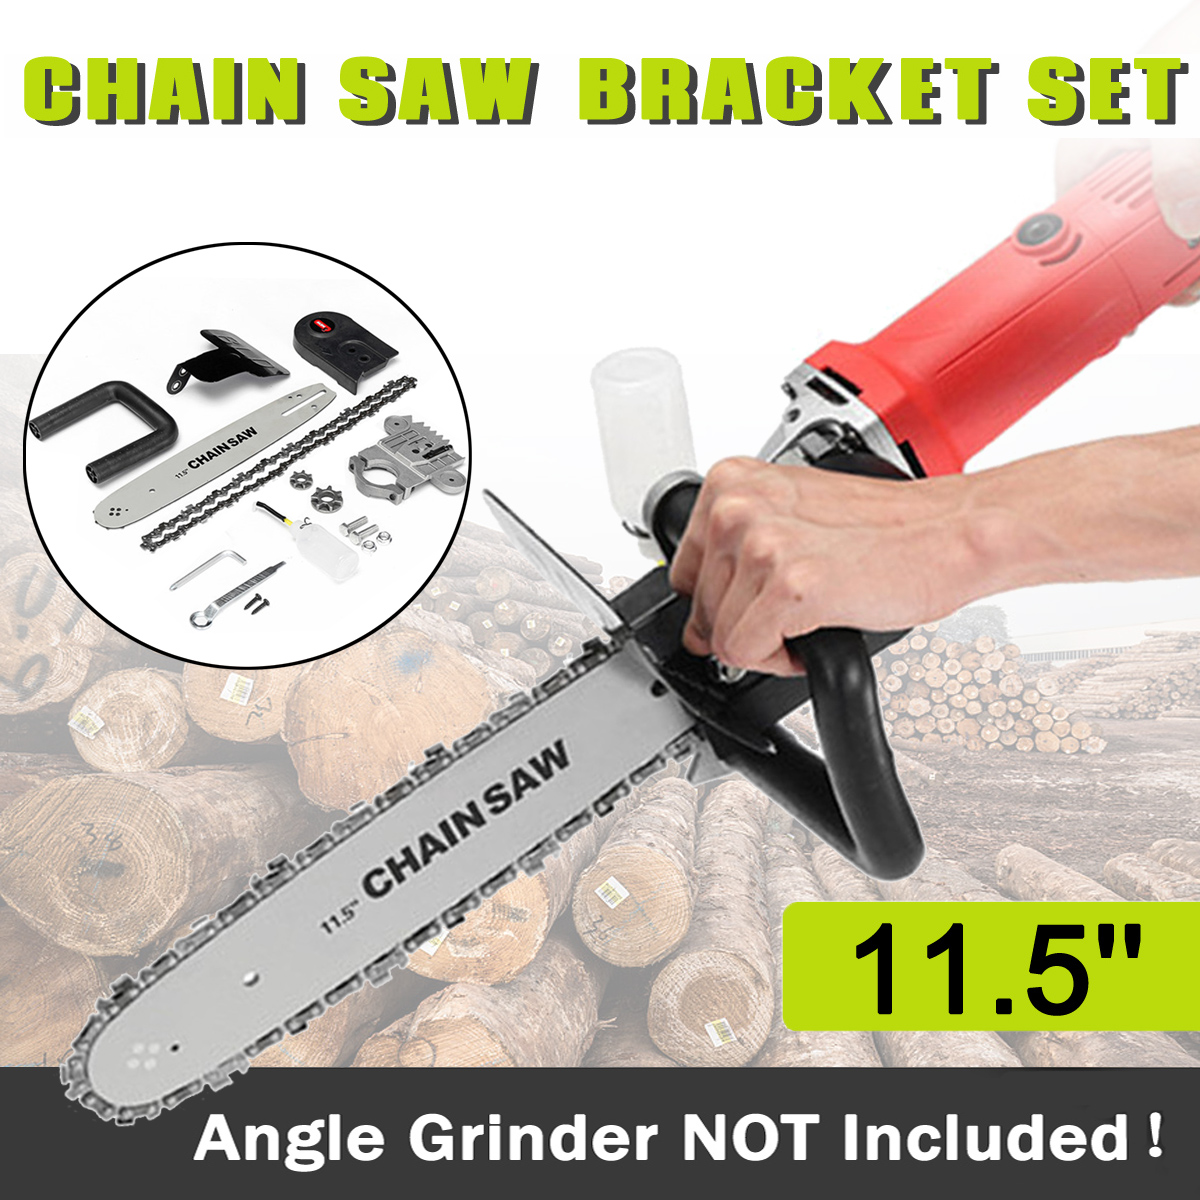 Drillpro Upgrade 11.5 Inch Chainsaw Bracket Changed 100 125 150 Angle Grinder M10/M14 Into Chain Saw Woodworking Tool